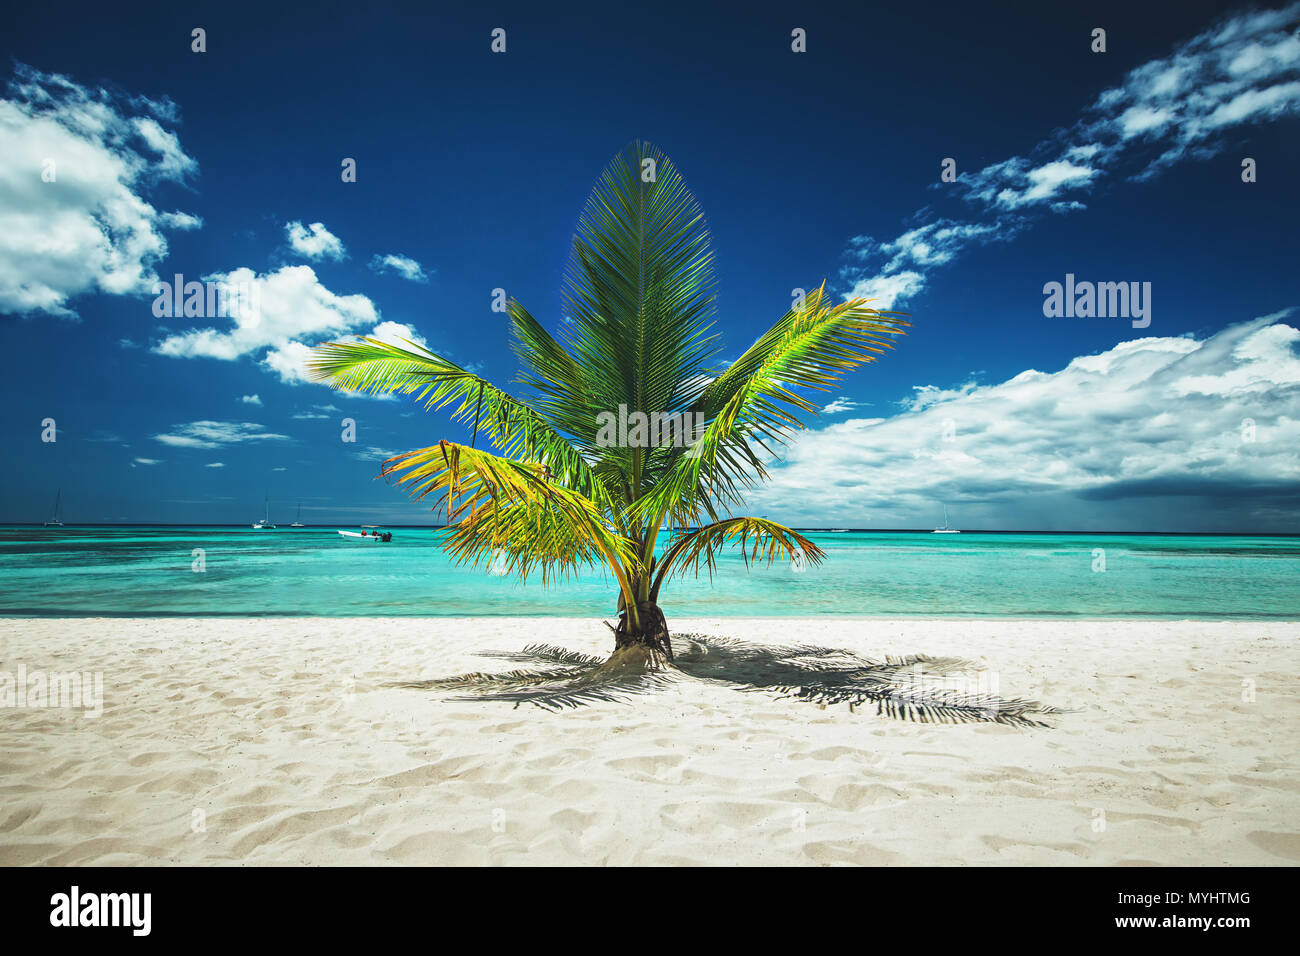 Palm and tropical beach - Stock Image